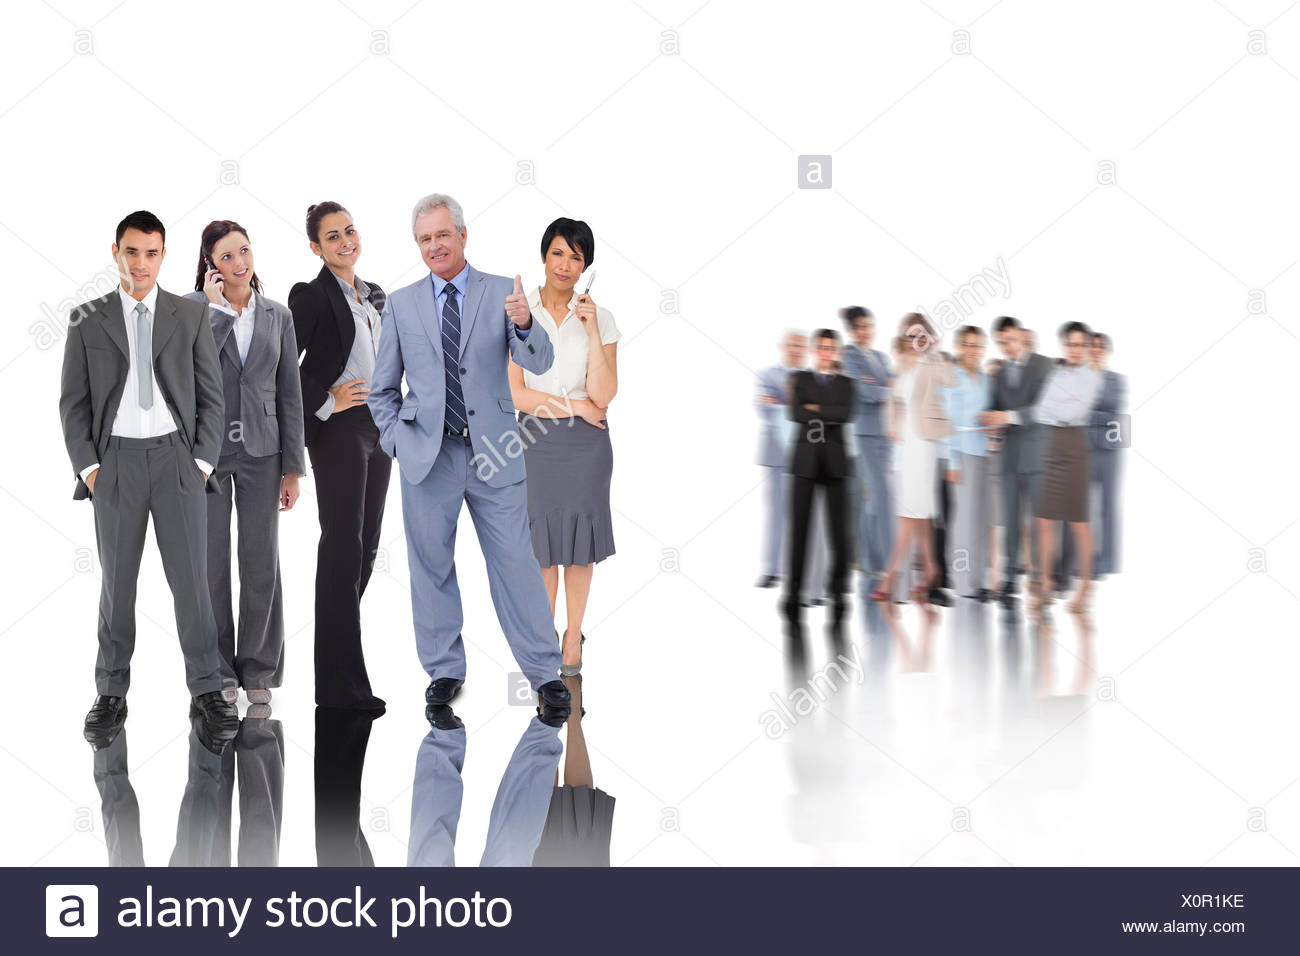 Composite image of business people - Stock Image